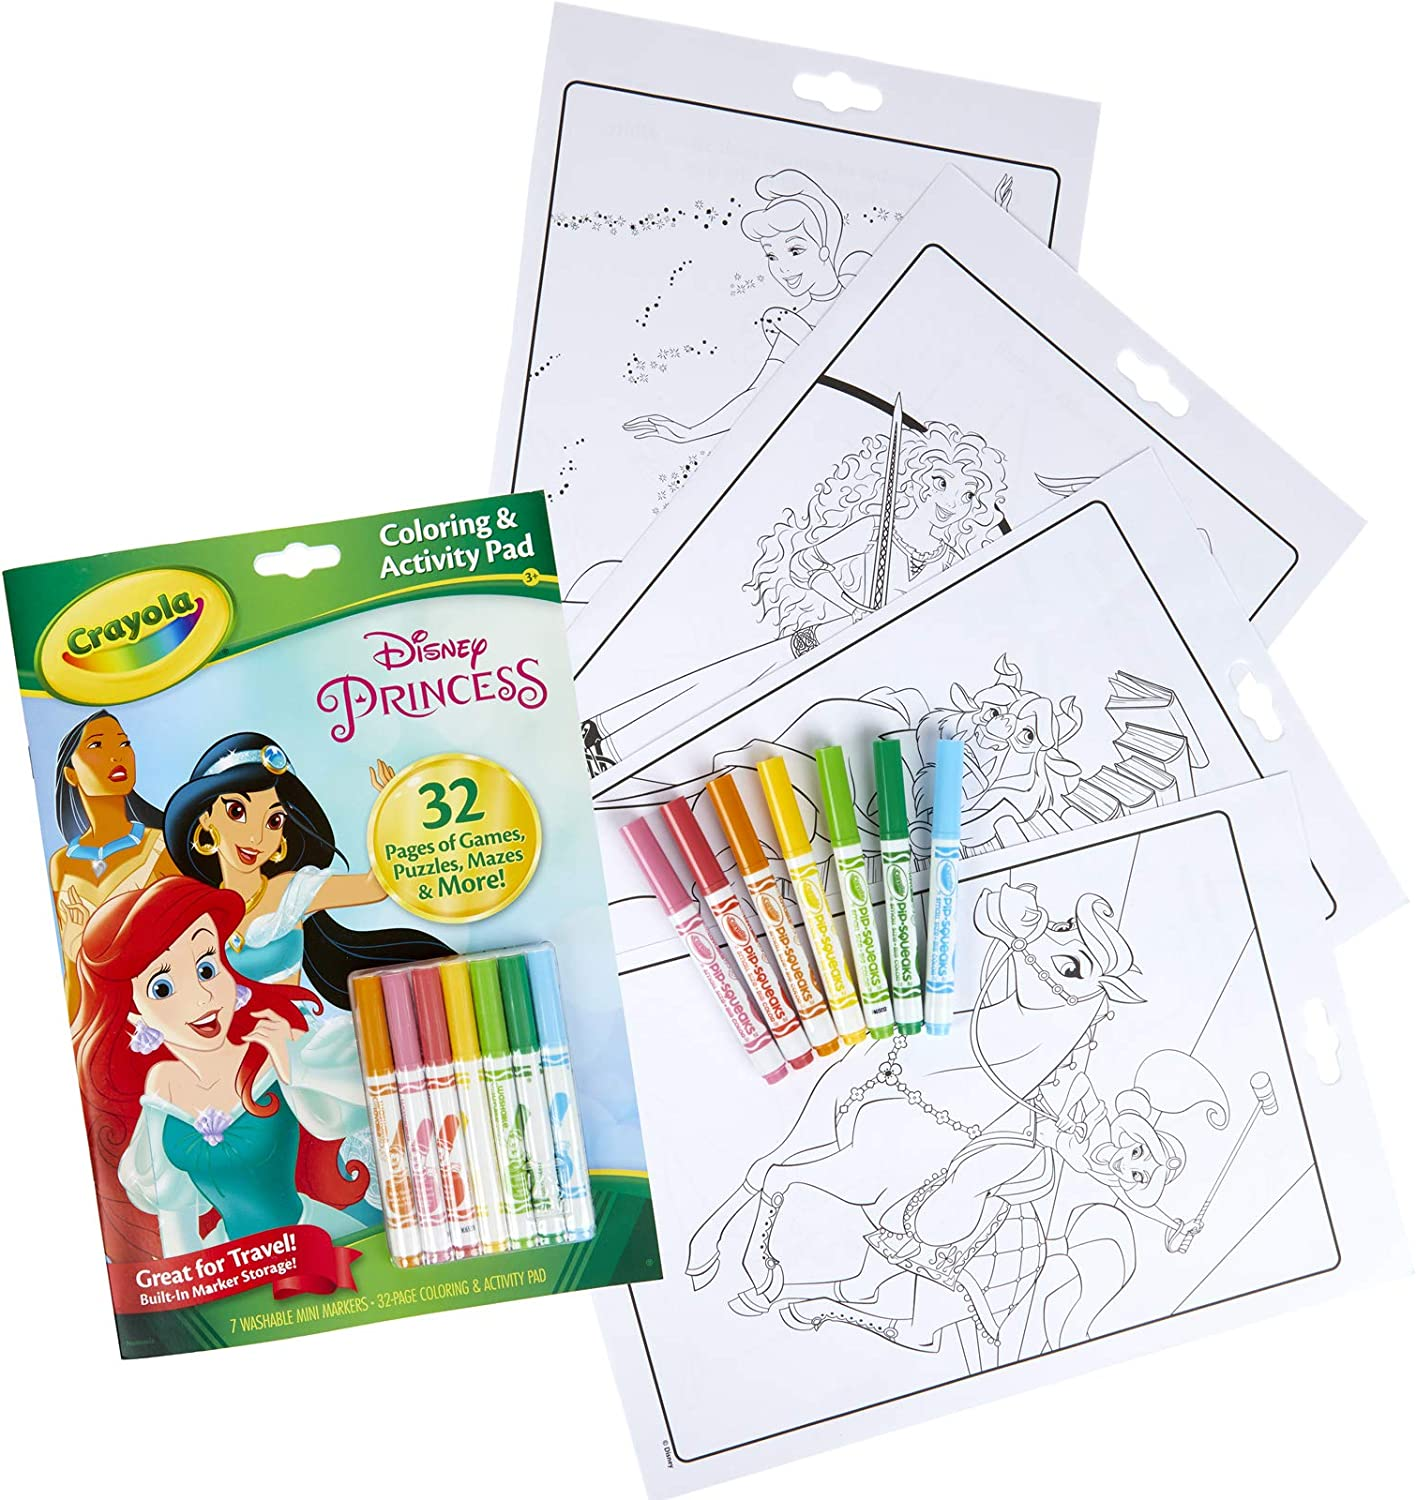 Crayola Disney Princess Color Activity Book 32 Coloring Pages 7 Mini Markers Gift For Kids Packaging May Vary Colouring Pens Markers Amazon Canada